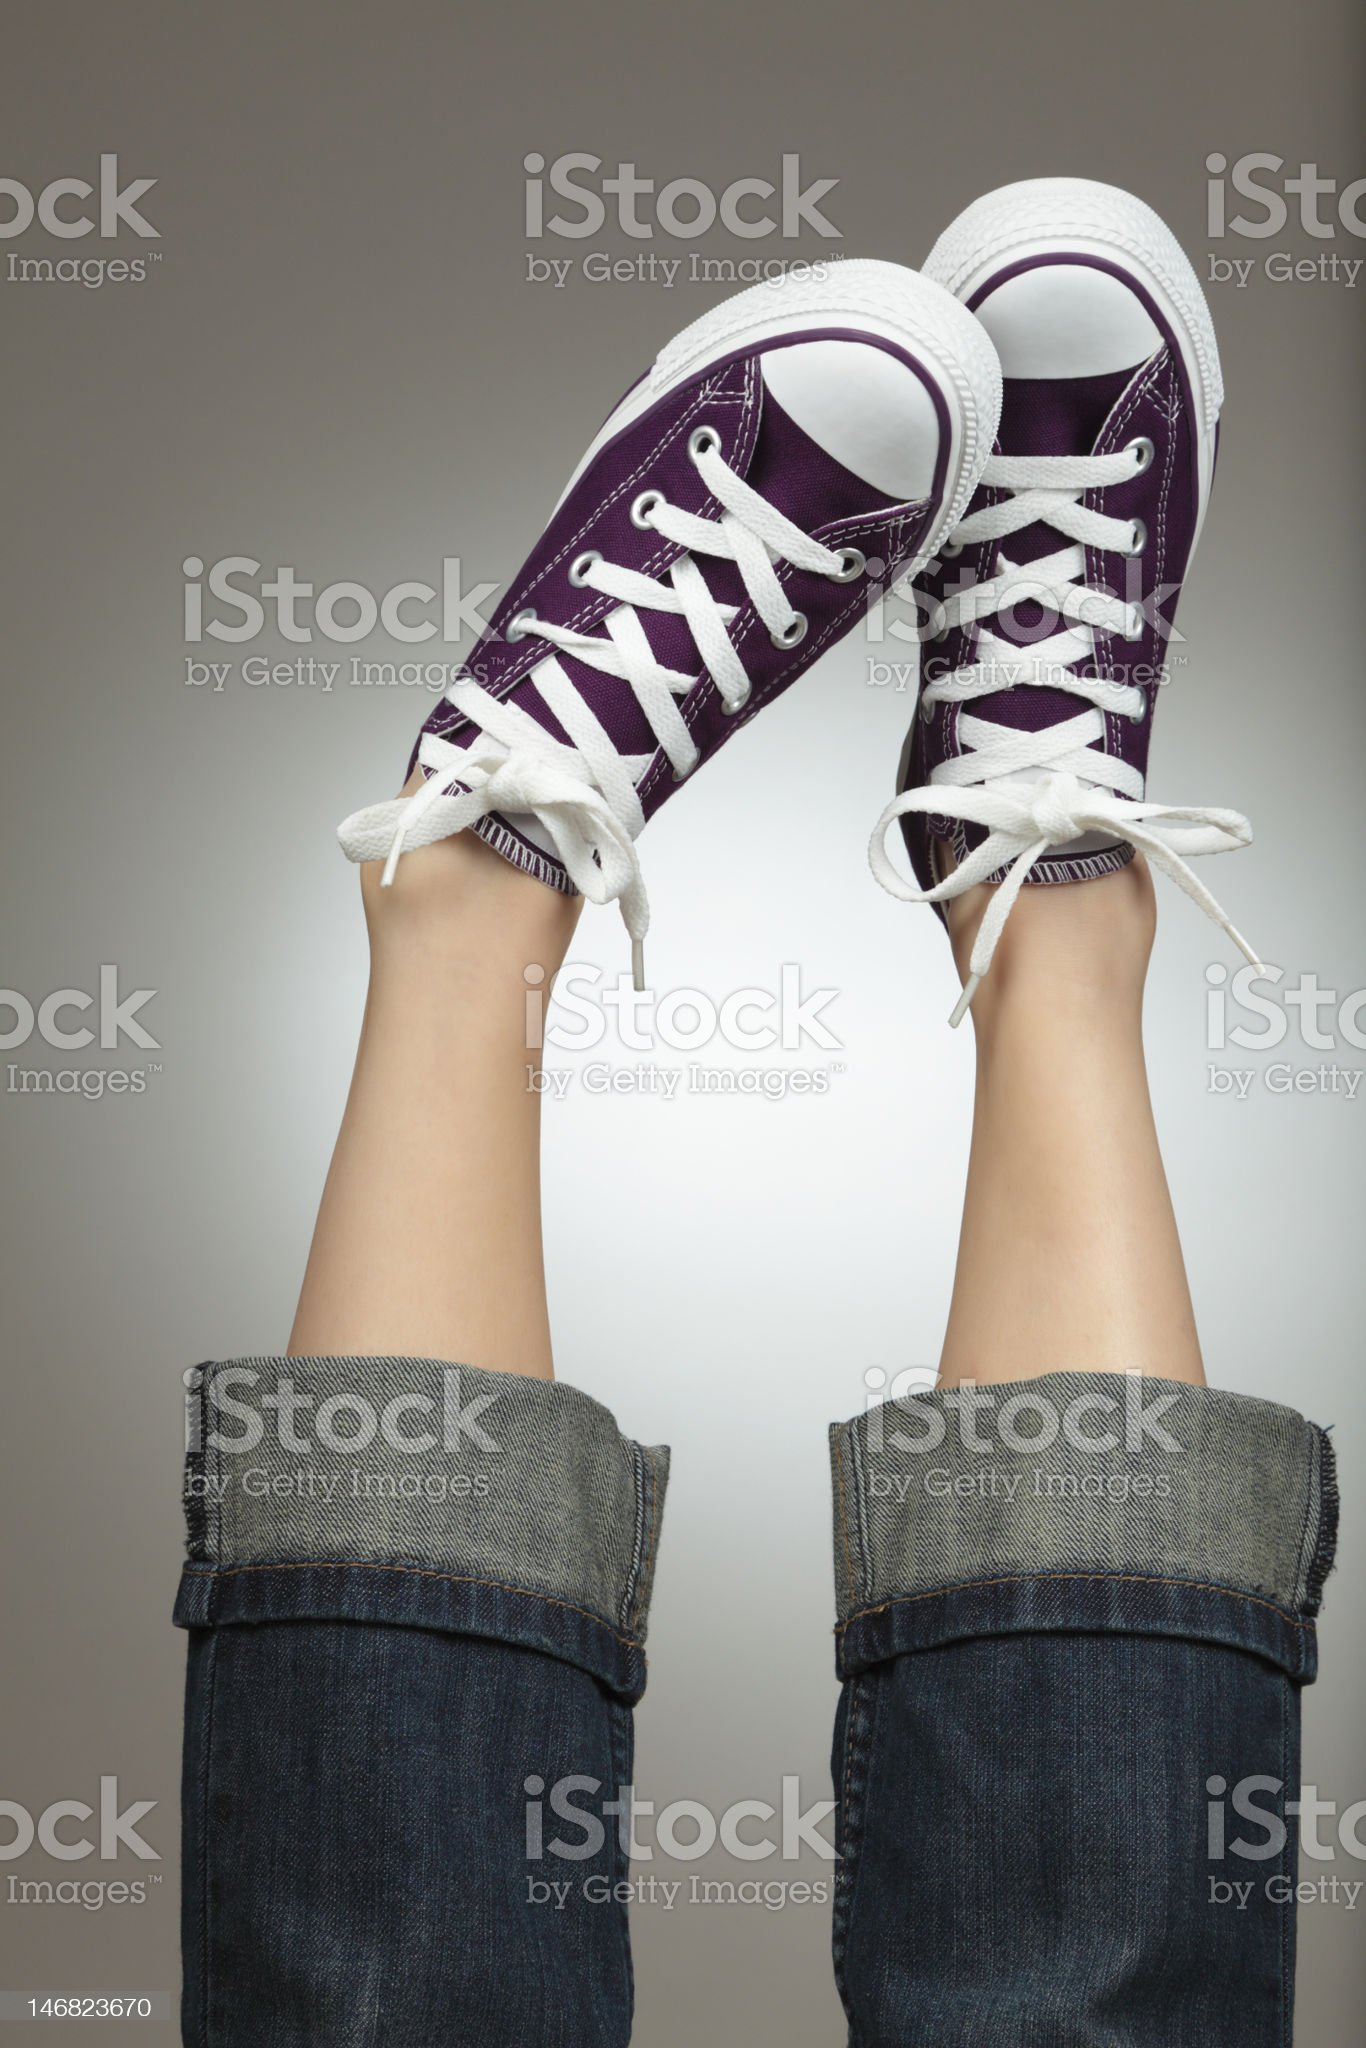 Feet in The Air With New Canvas Shoes royalty-free stock photo